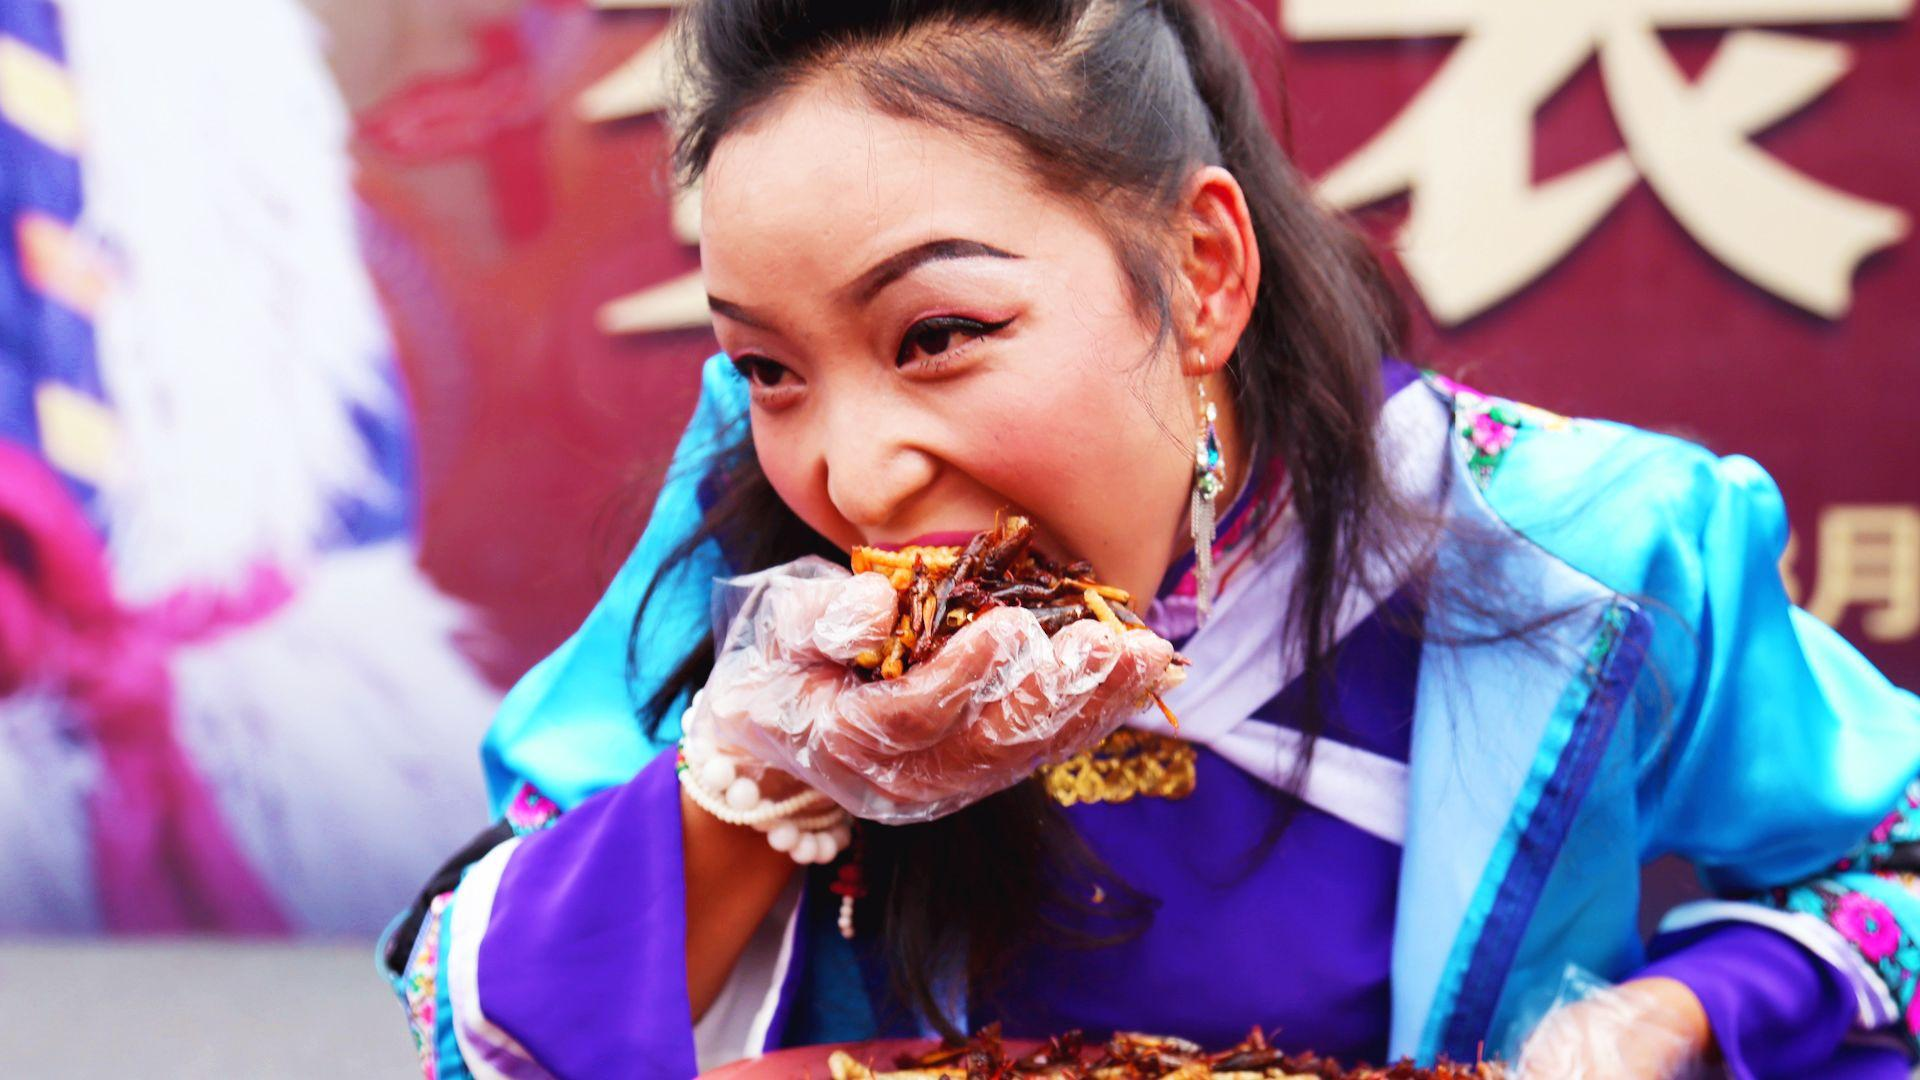 Try Not To Bug Out Over This Insect-Eating Contest in Lijiang, China